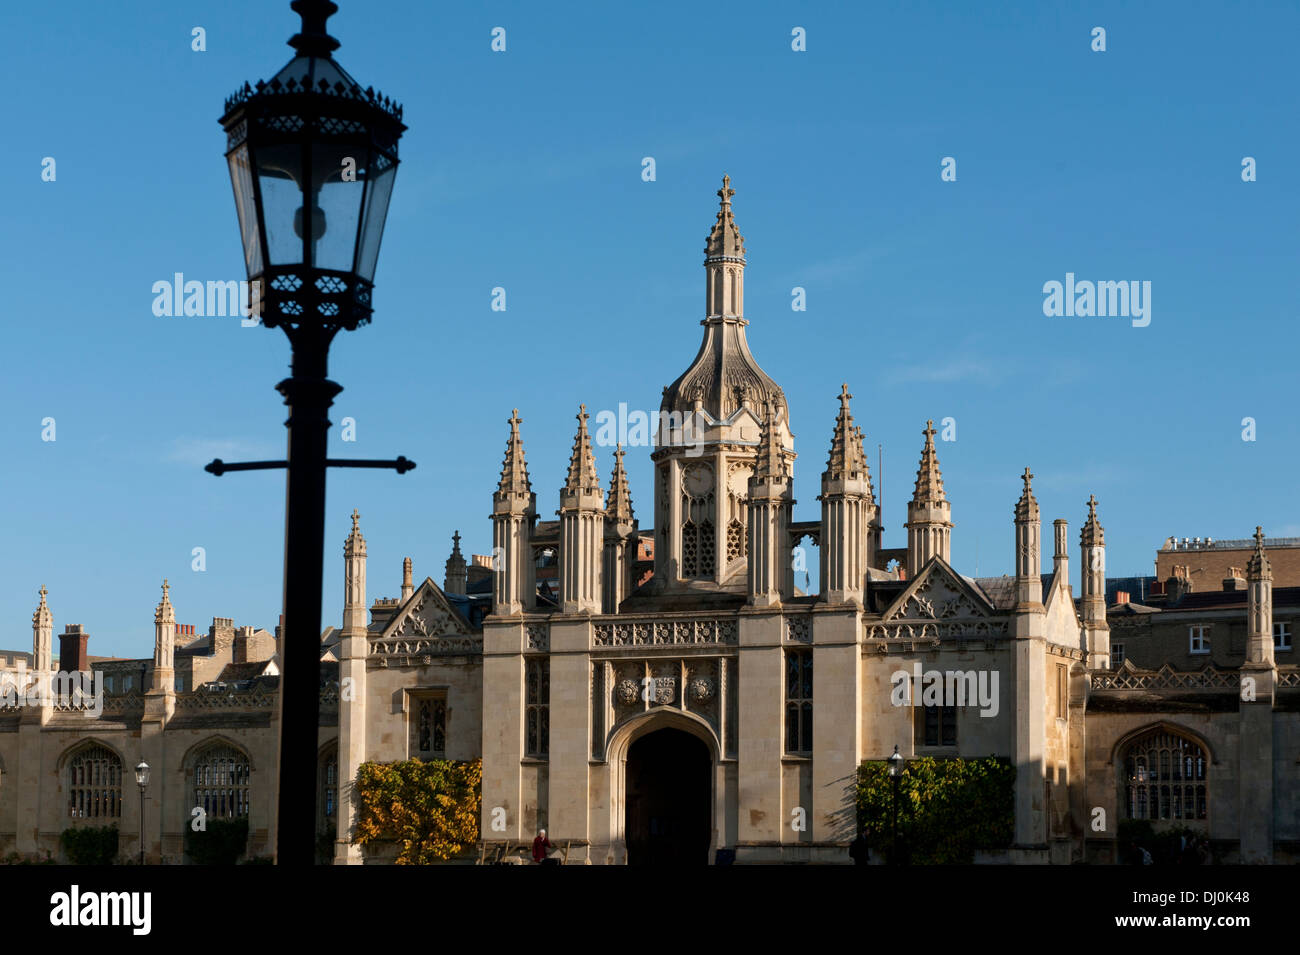 Cambridge, England. King's College, the University of Cambridge, England. 15_11_2013. The Main Gate. - Stock Image